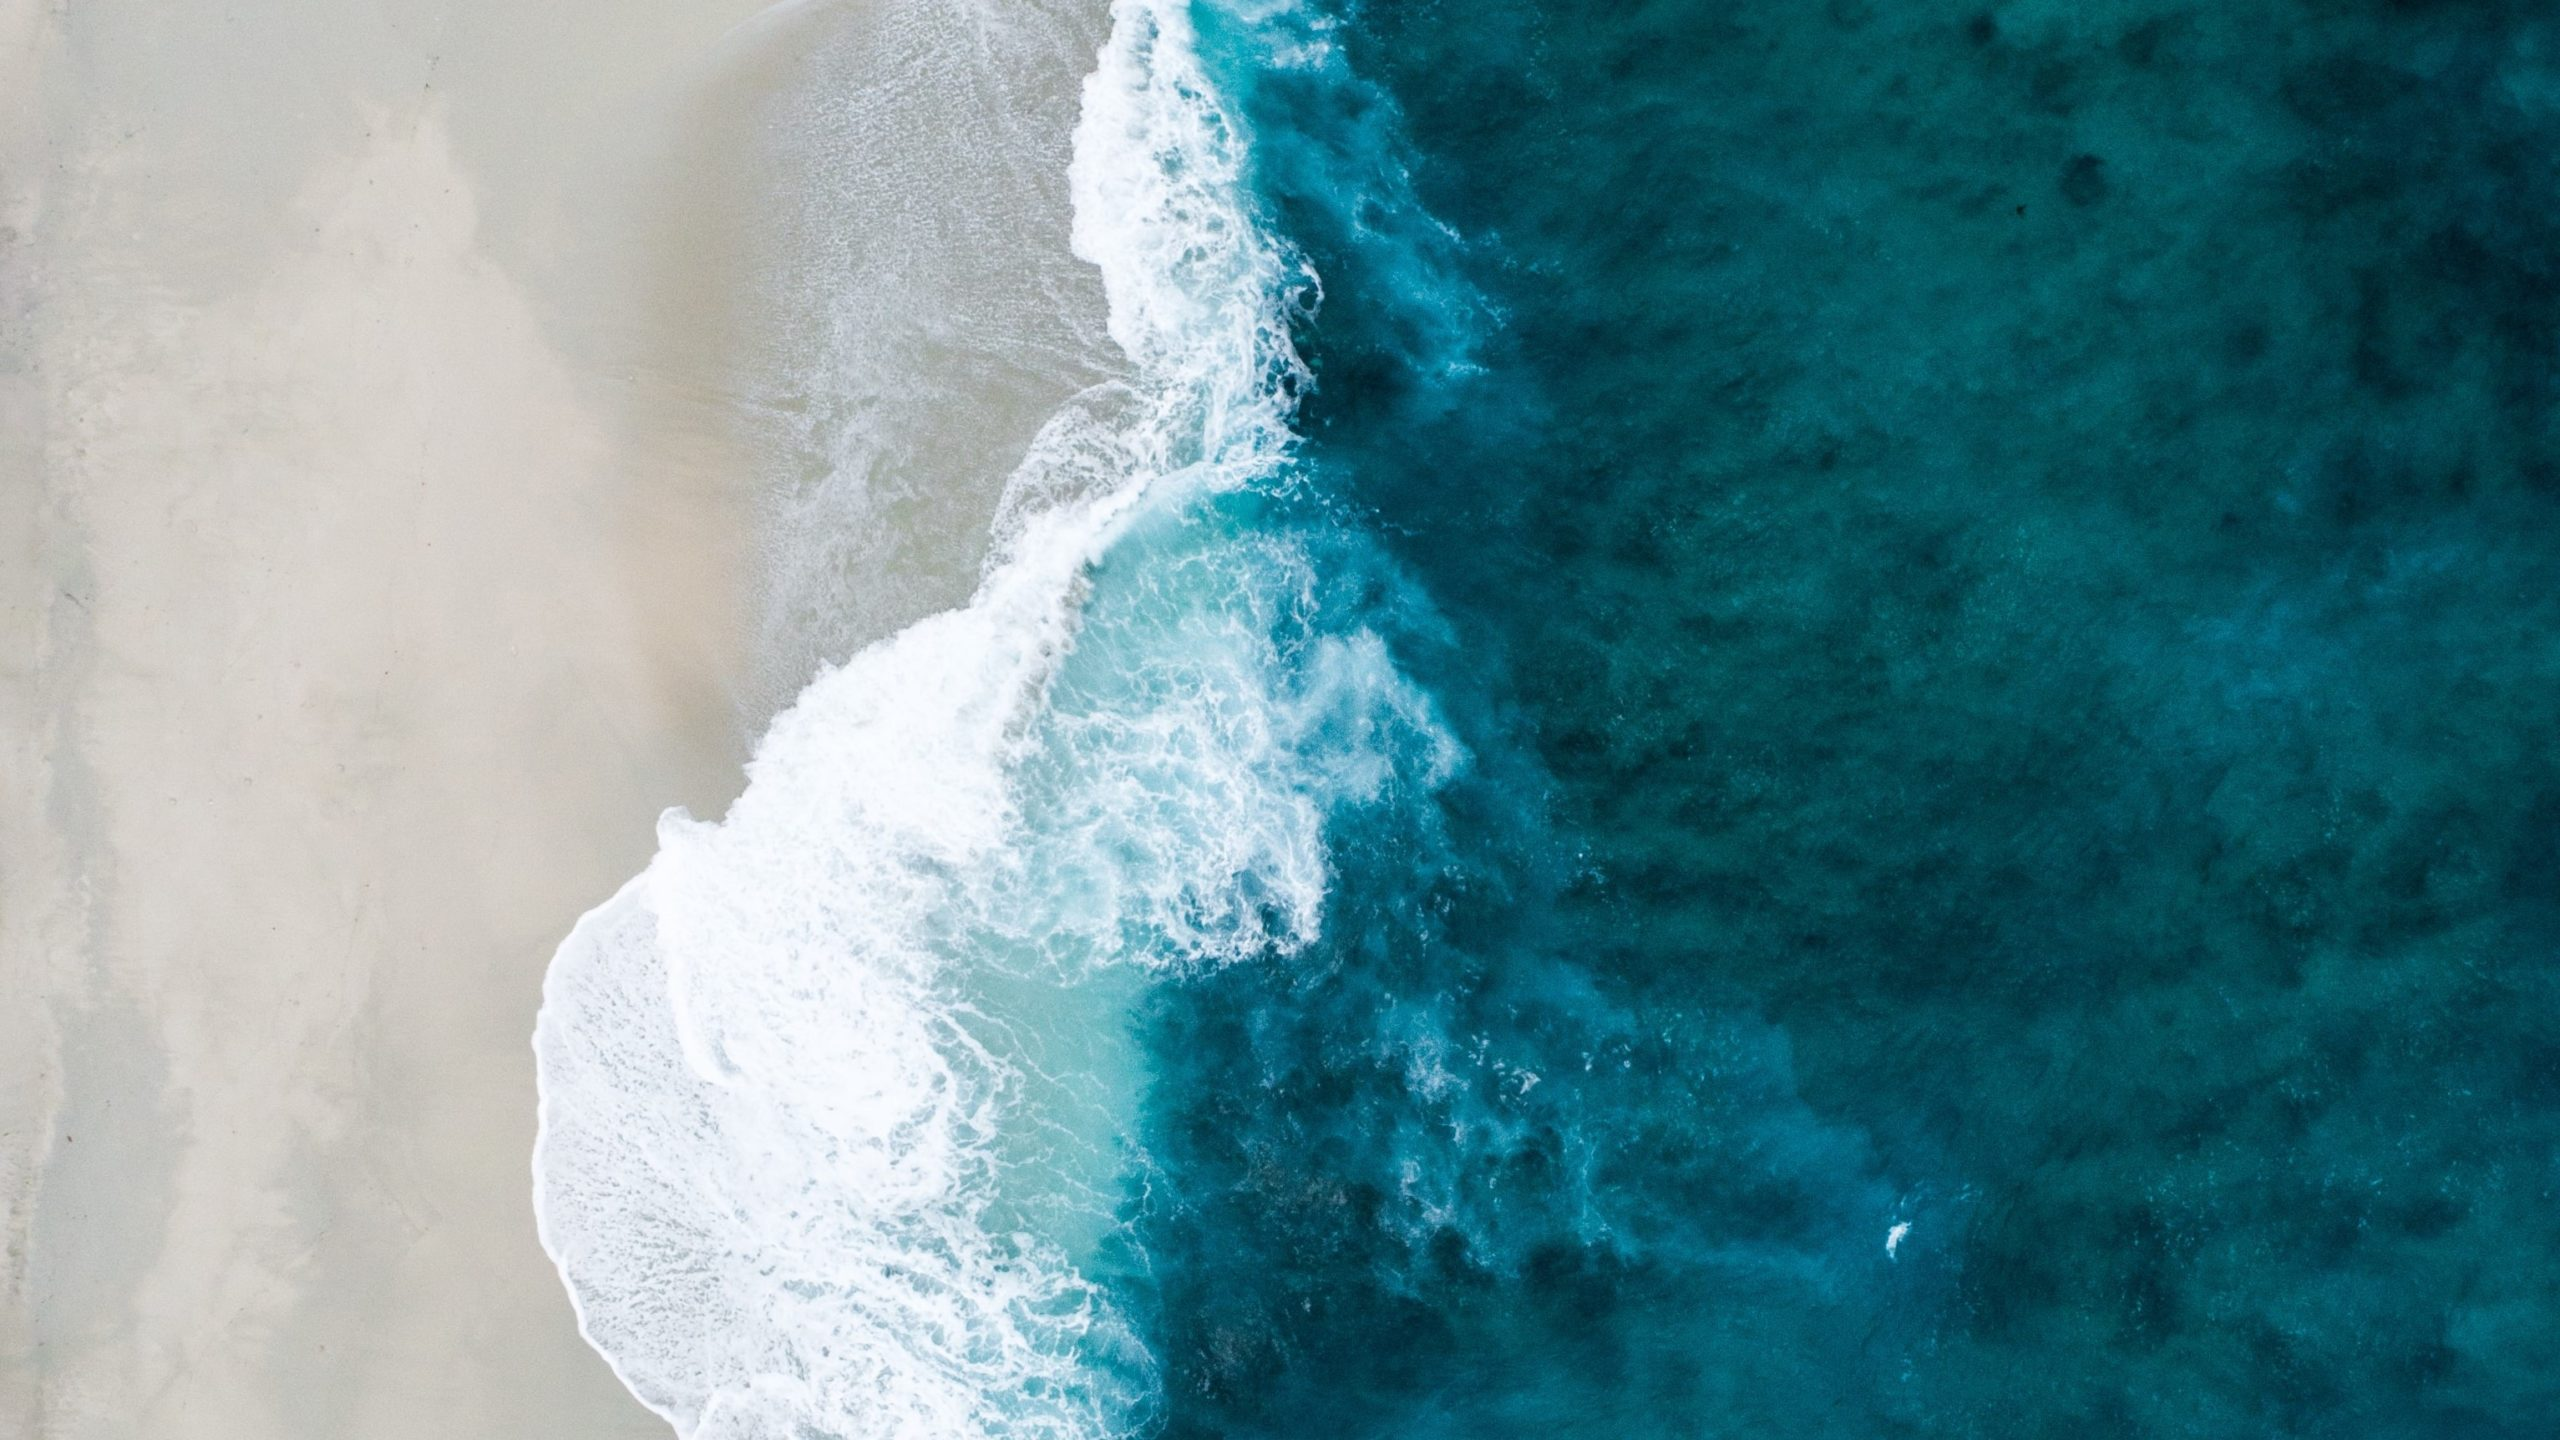 arial view of the ocean showing the waves hitting the sandy shore